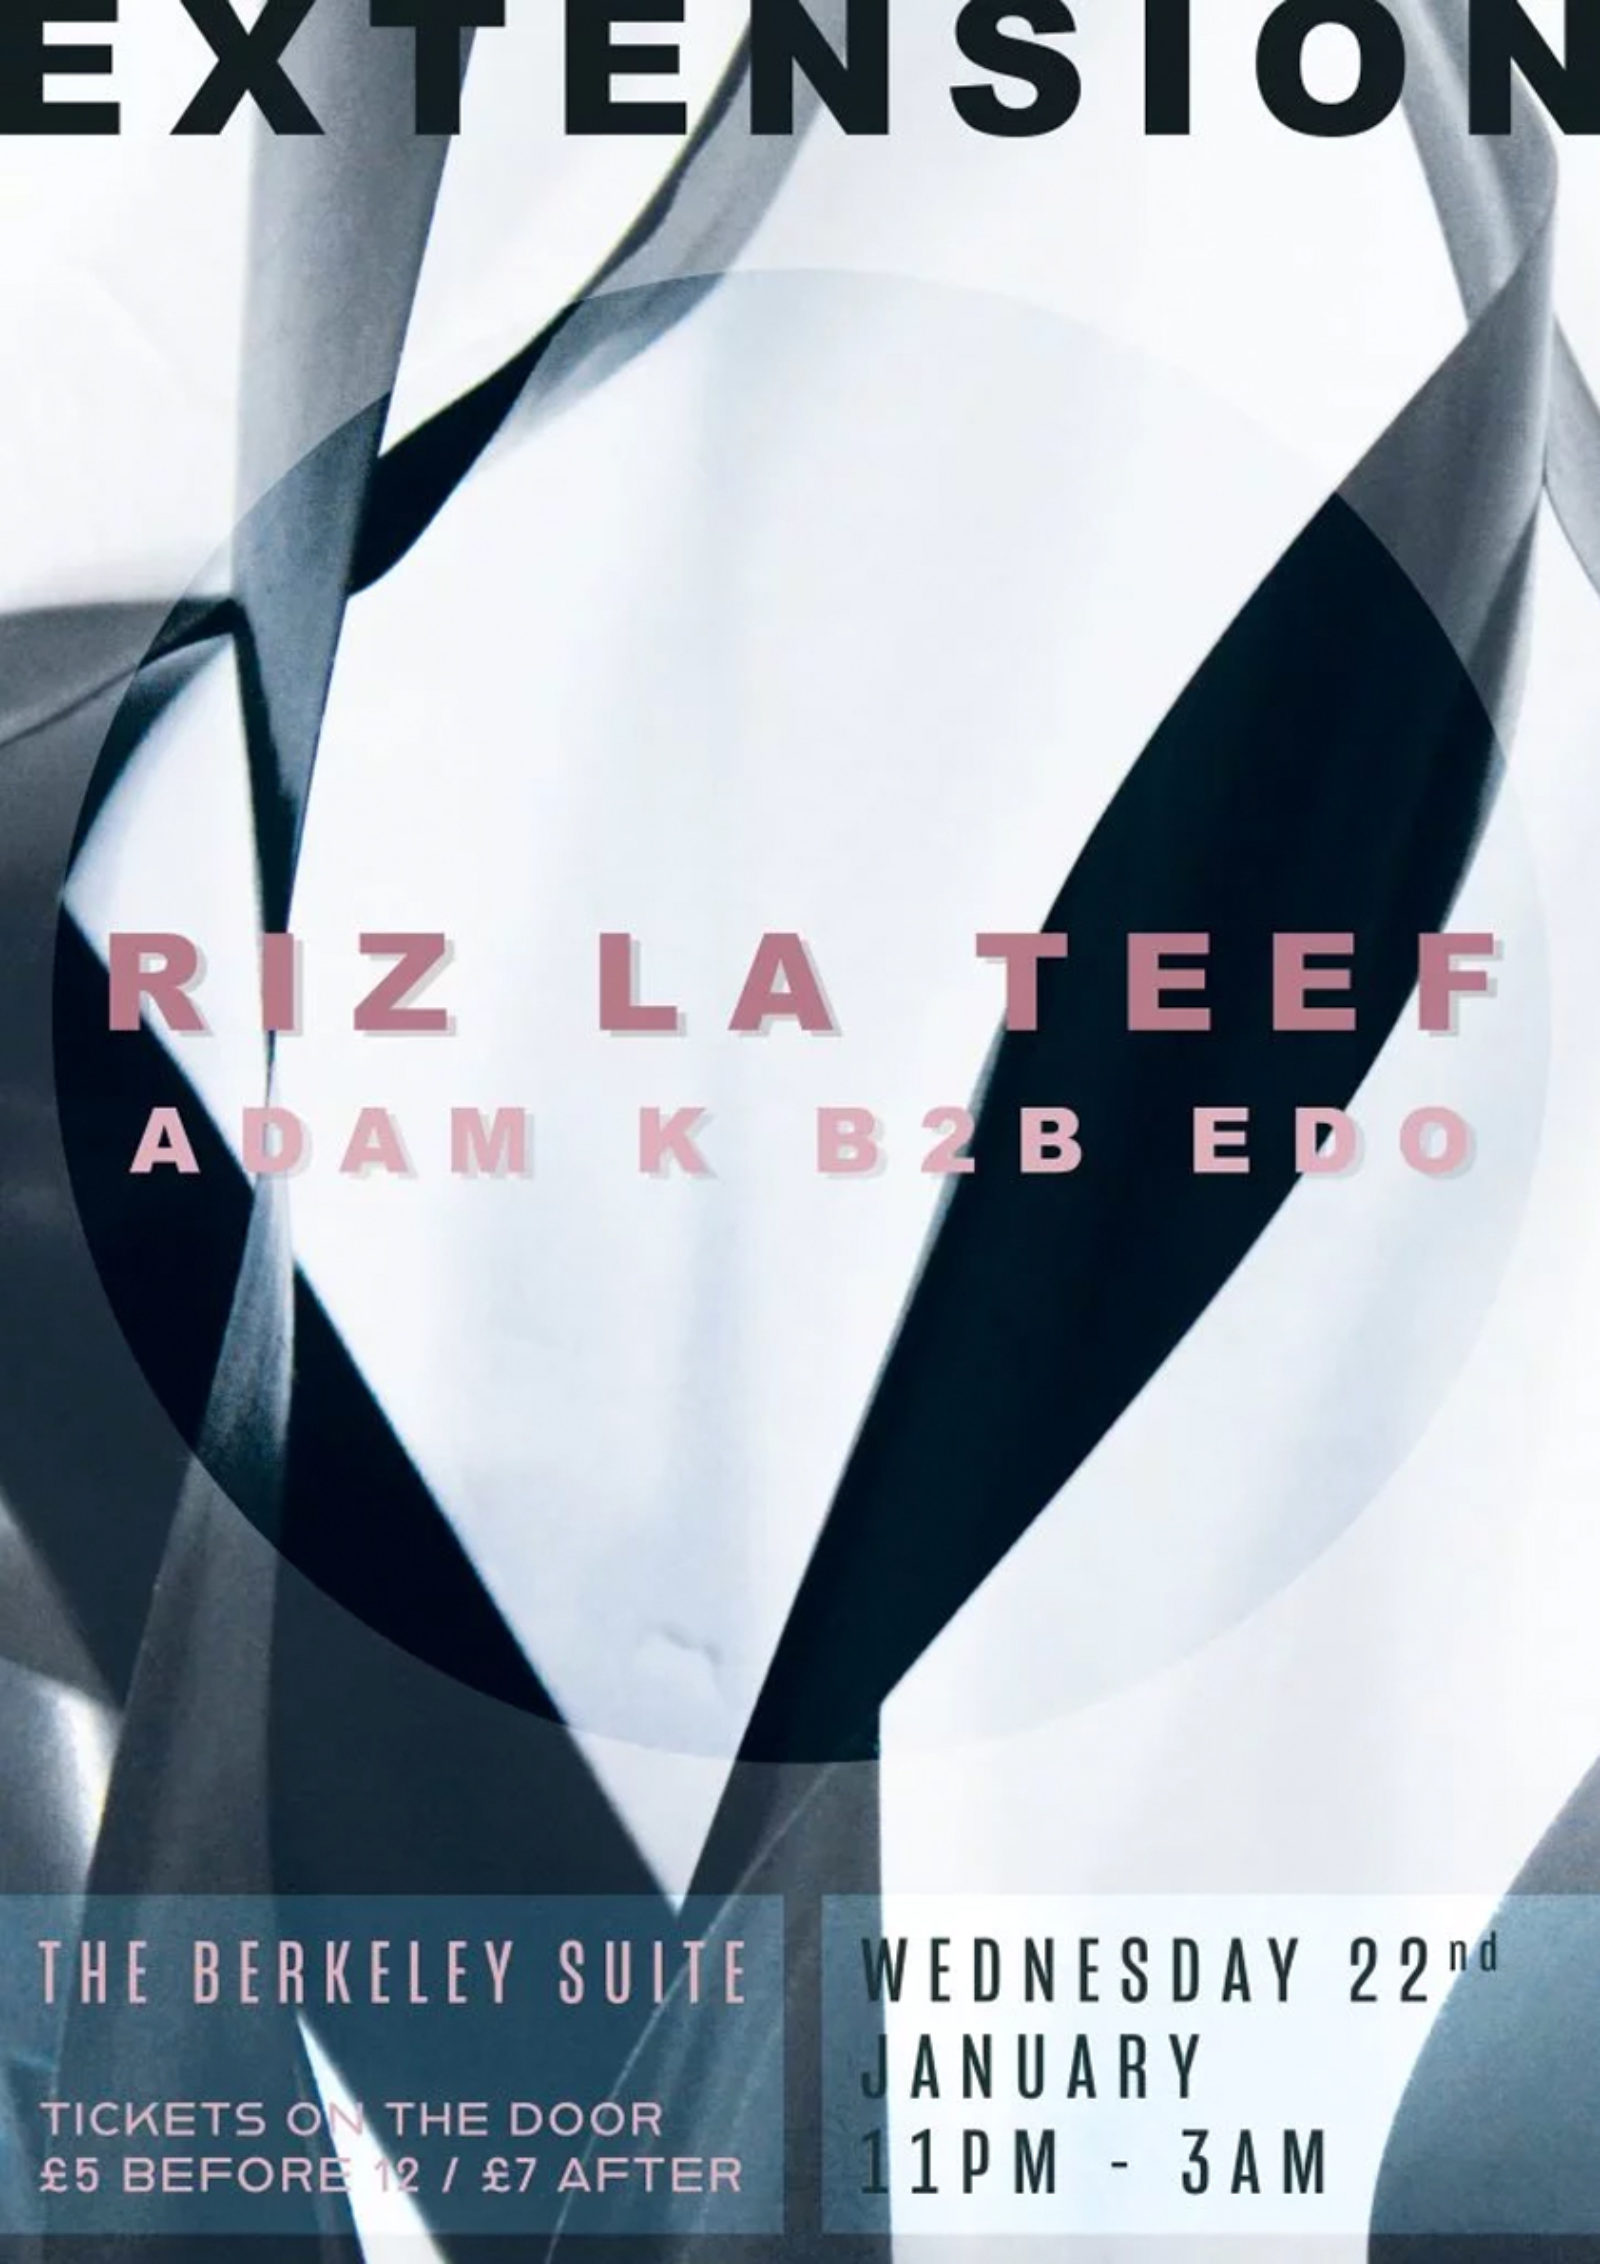 Extension Launch Party with Riz La Teef